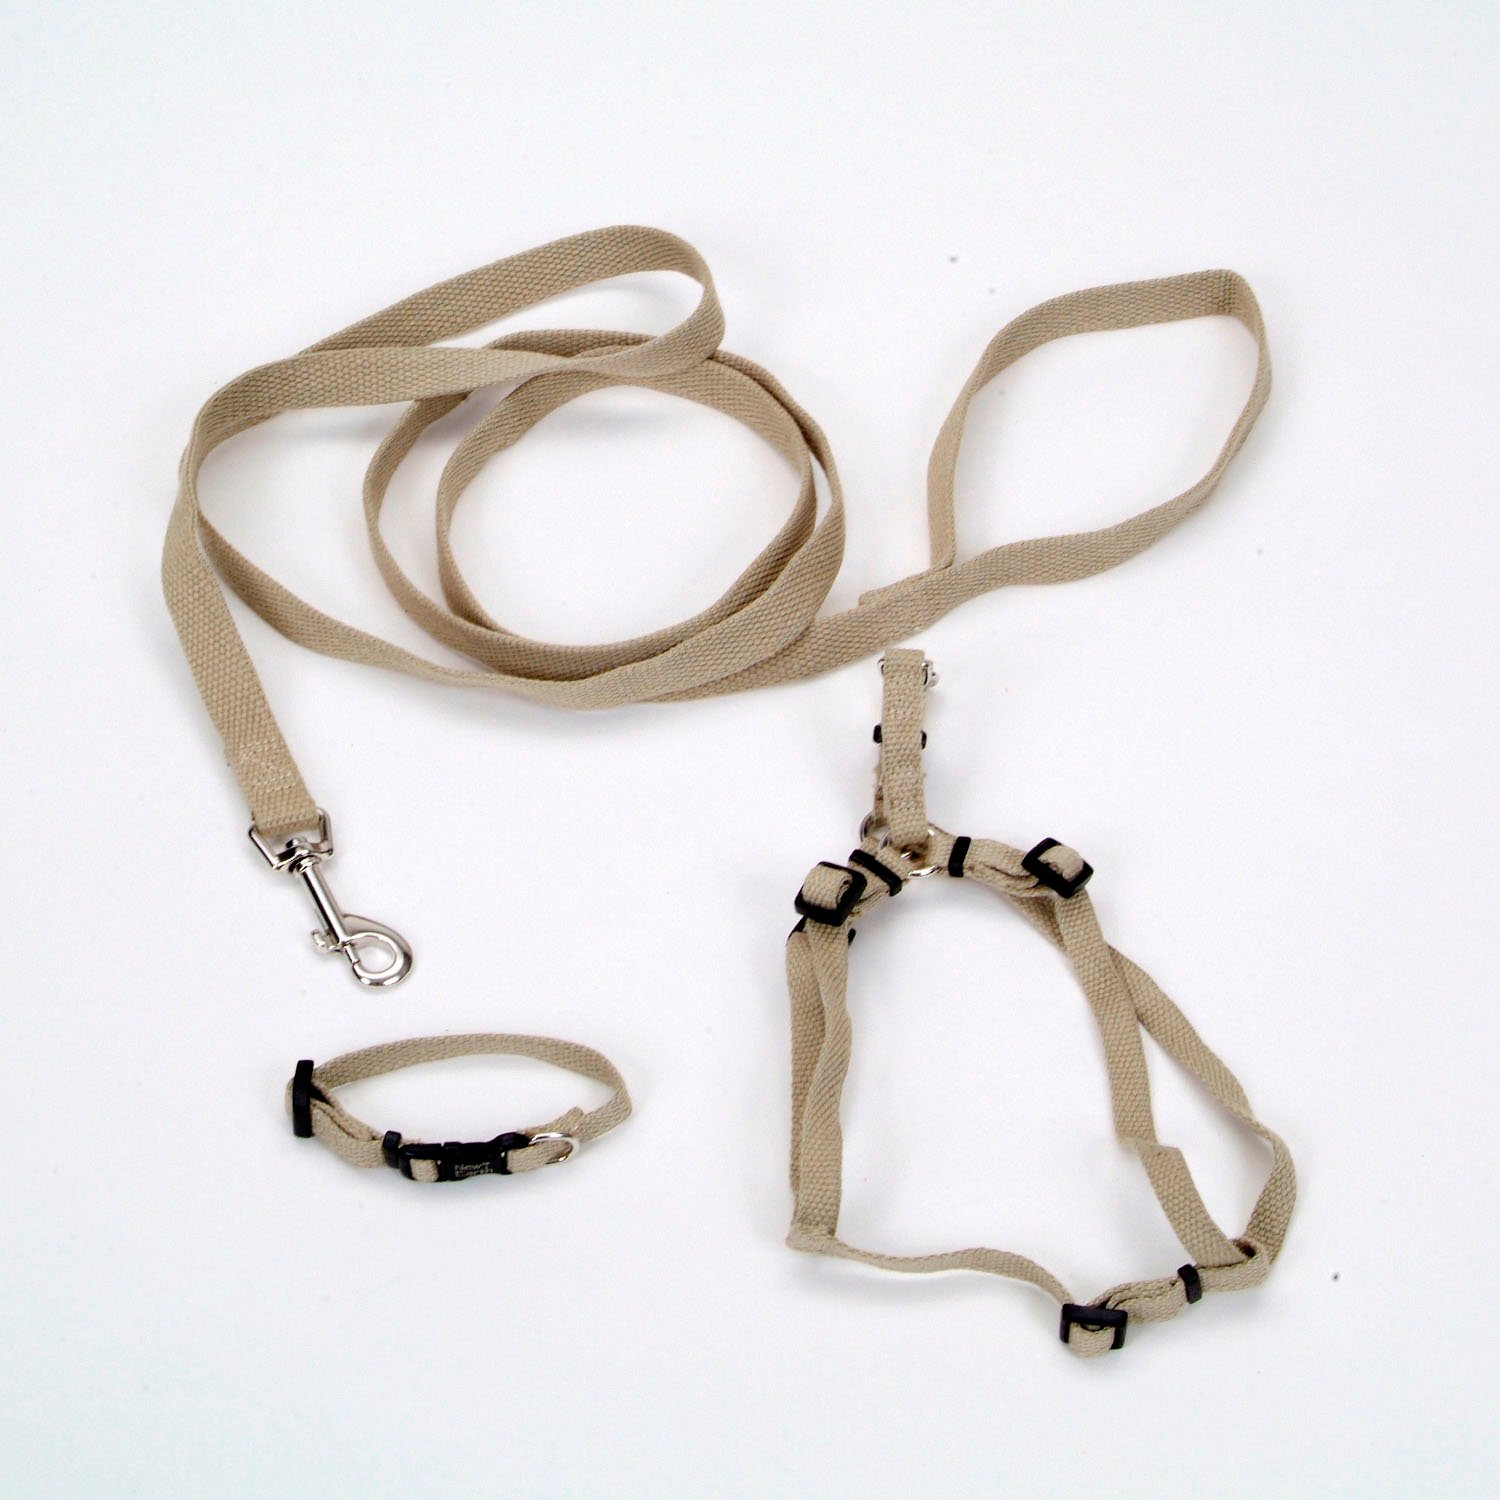 Coastal Pet New Earth 3-Piece Soy Dog Leash Harness and Collar Bundle in Tan